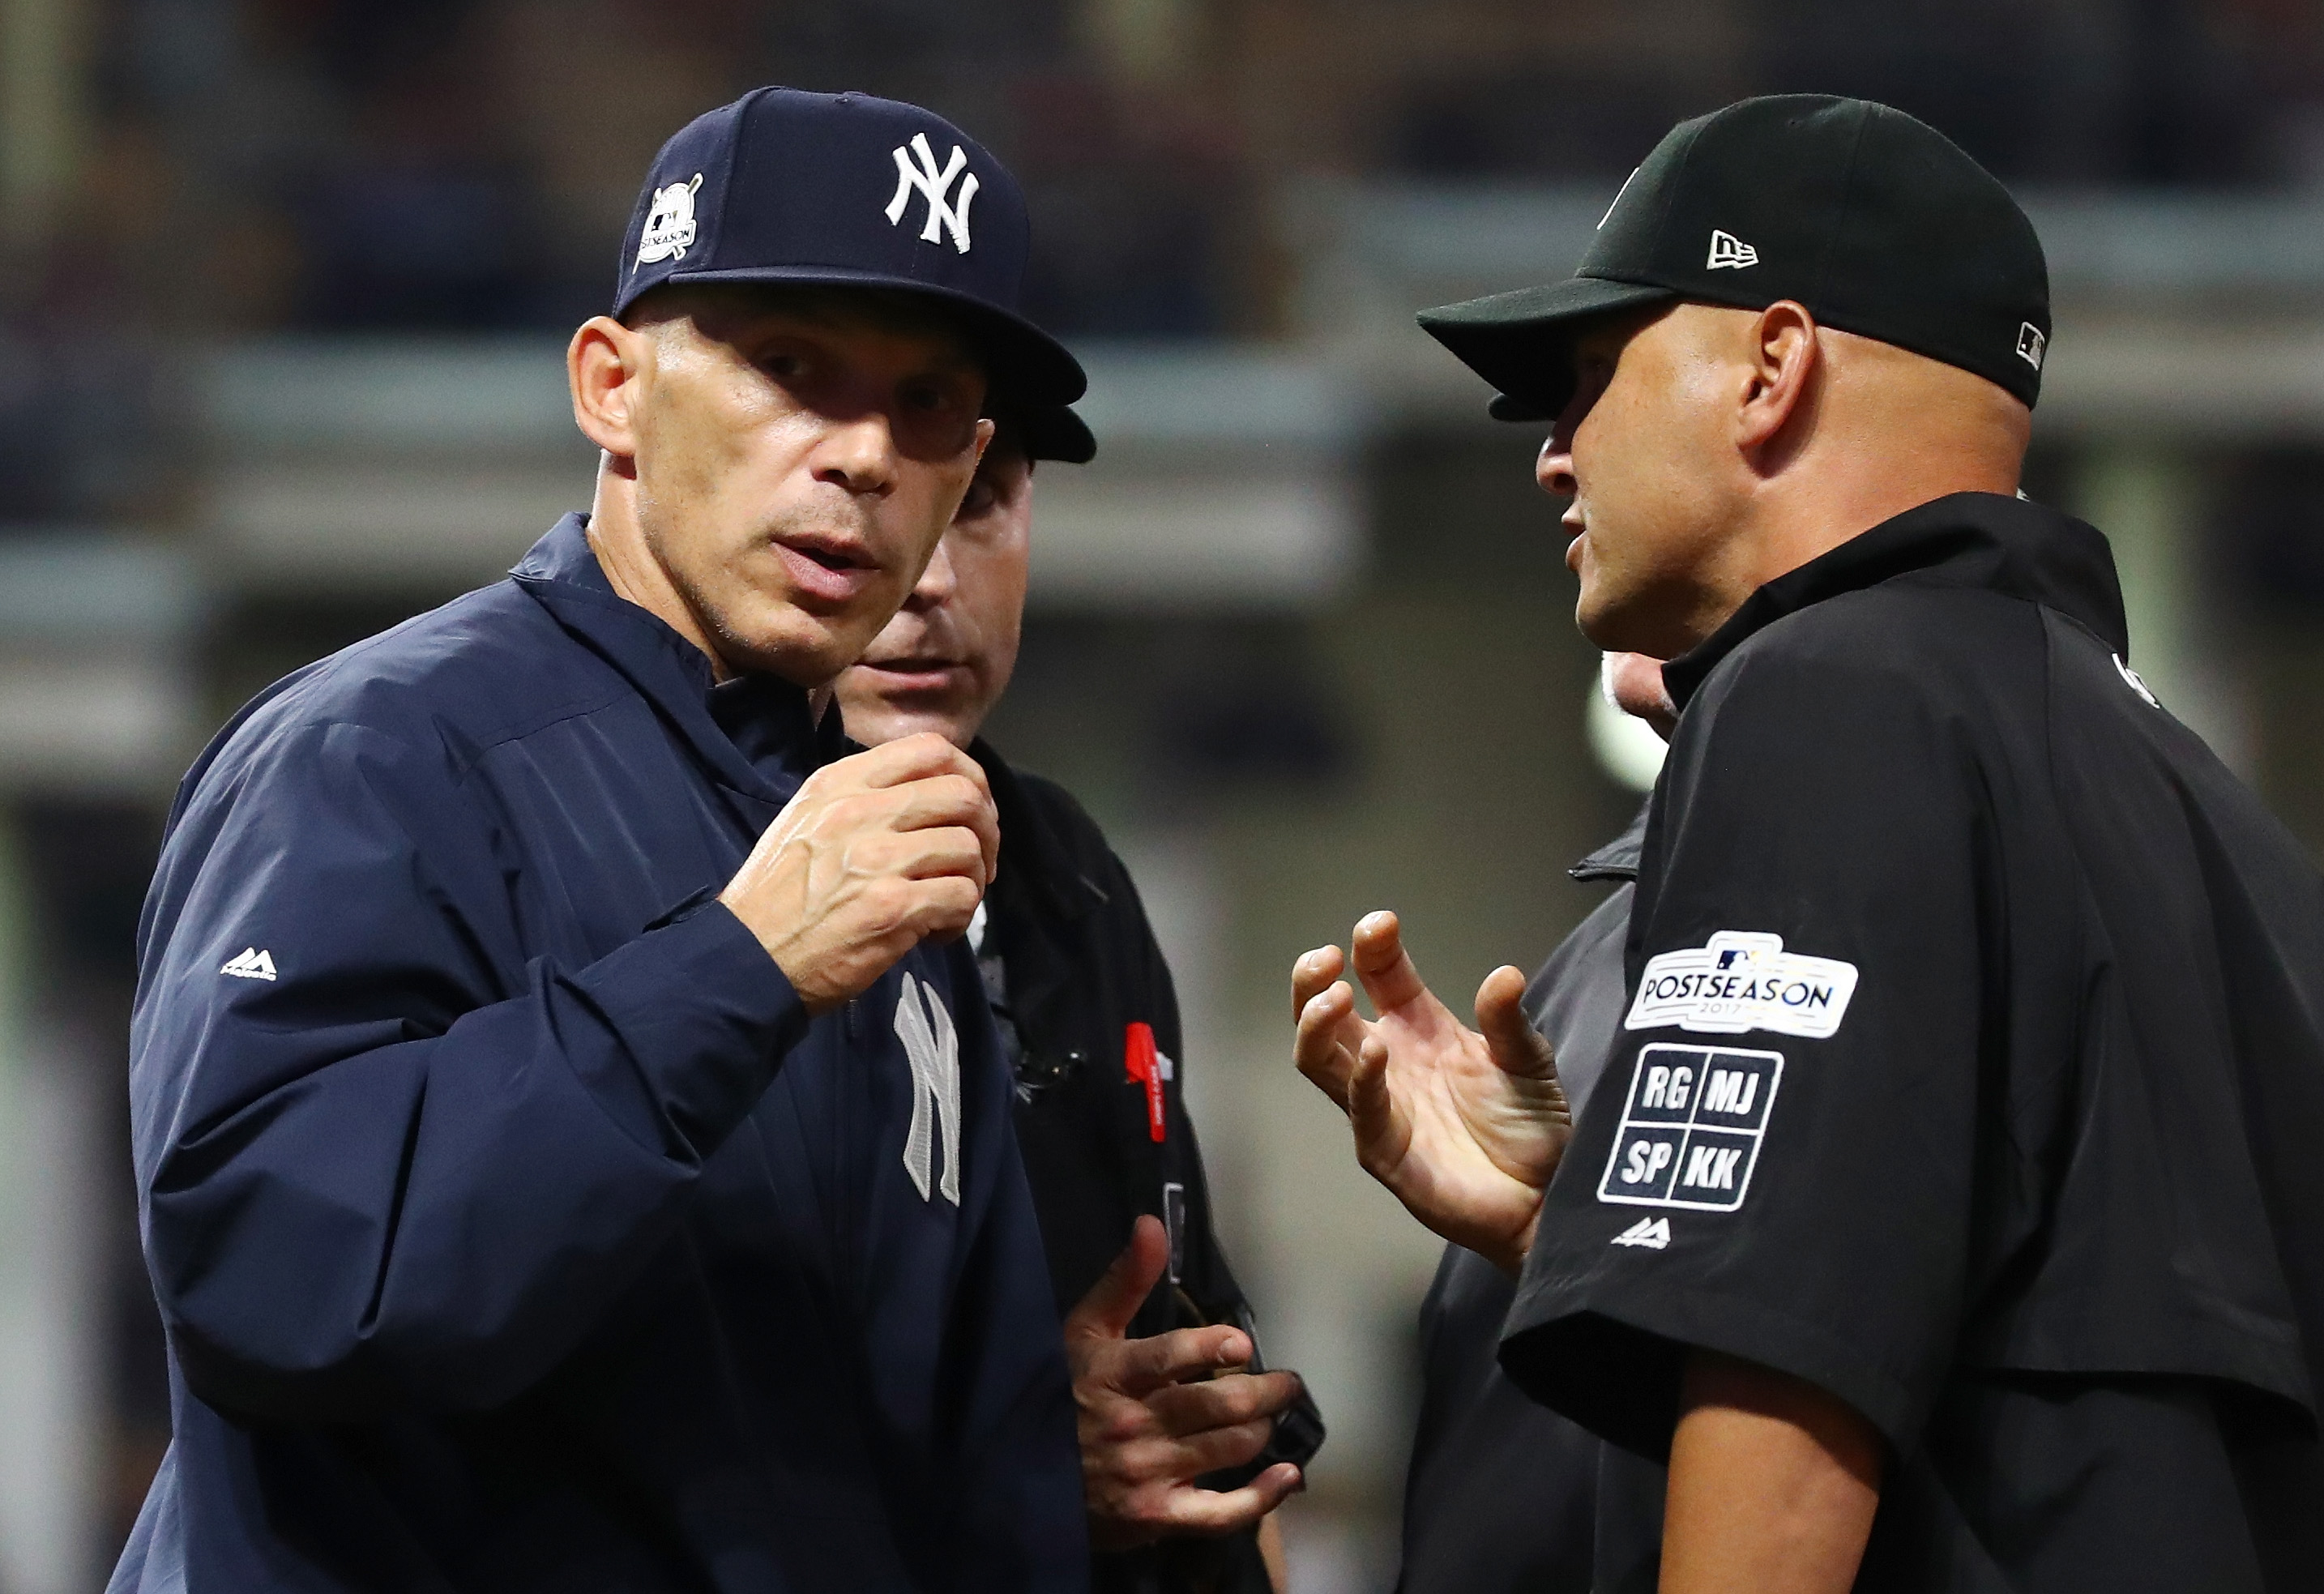 Girardi: I 'Screwed Up' Not Challenging Call